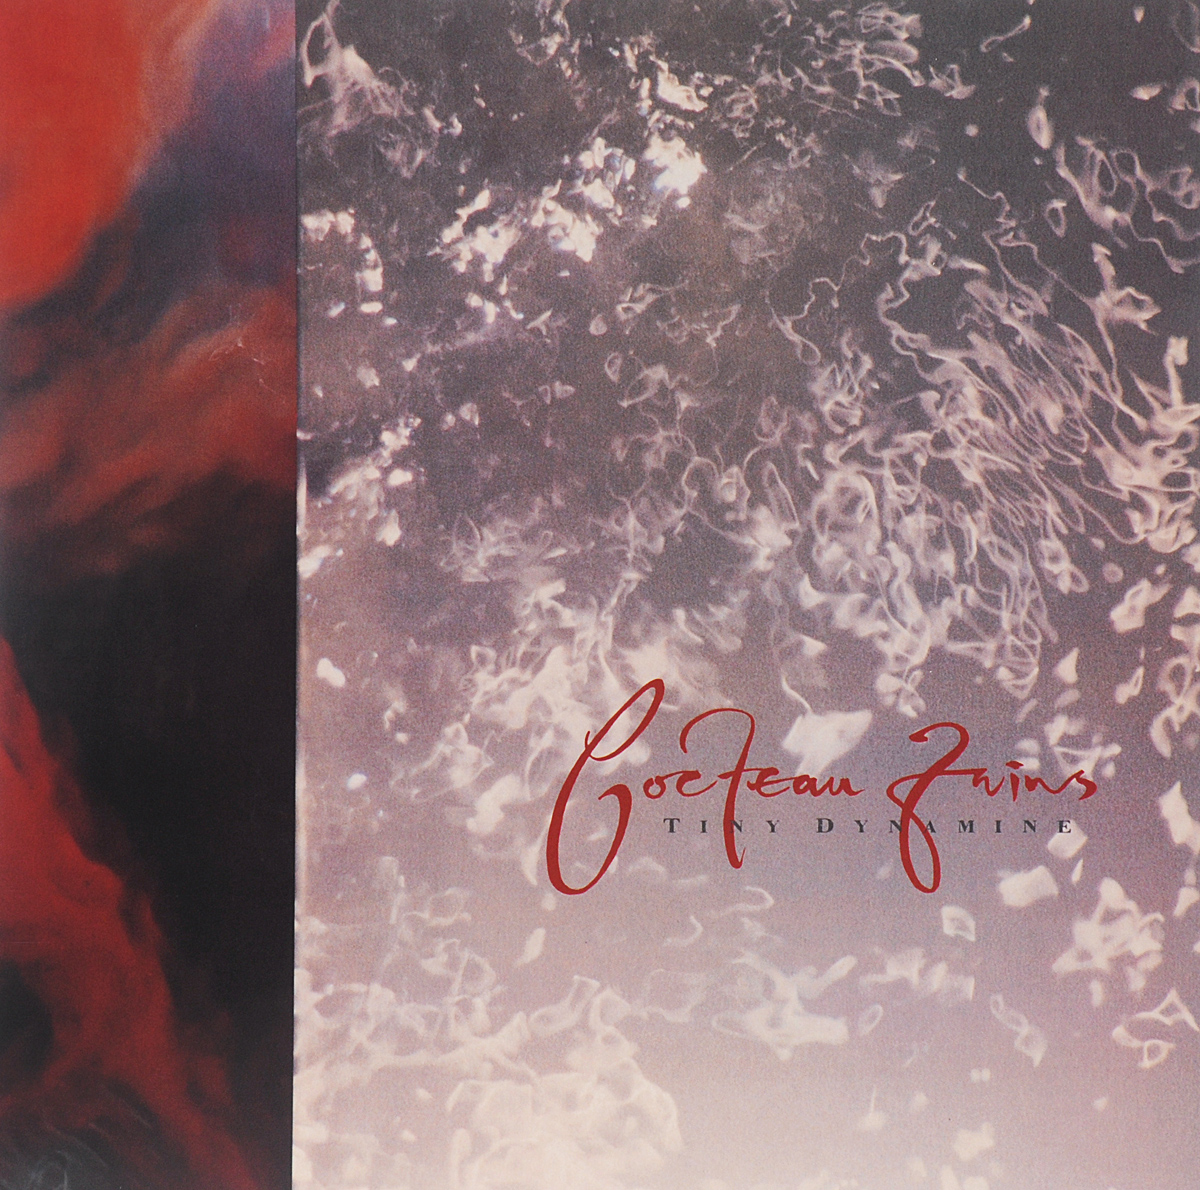 Cocteau Twins Cocteau Twins. Tiny Dynamine / Echoes In A Shallow Bay (LP) цена